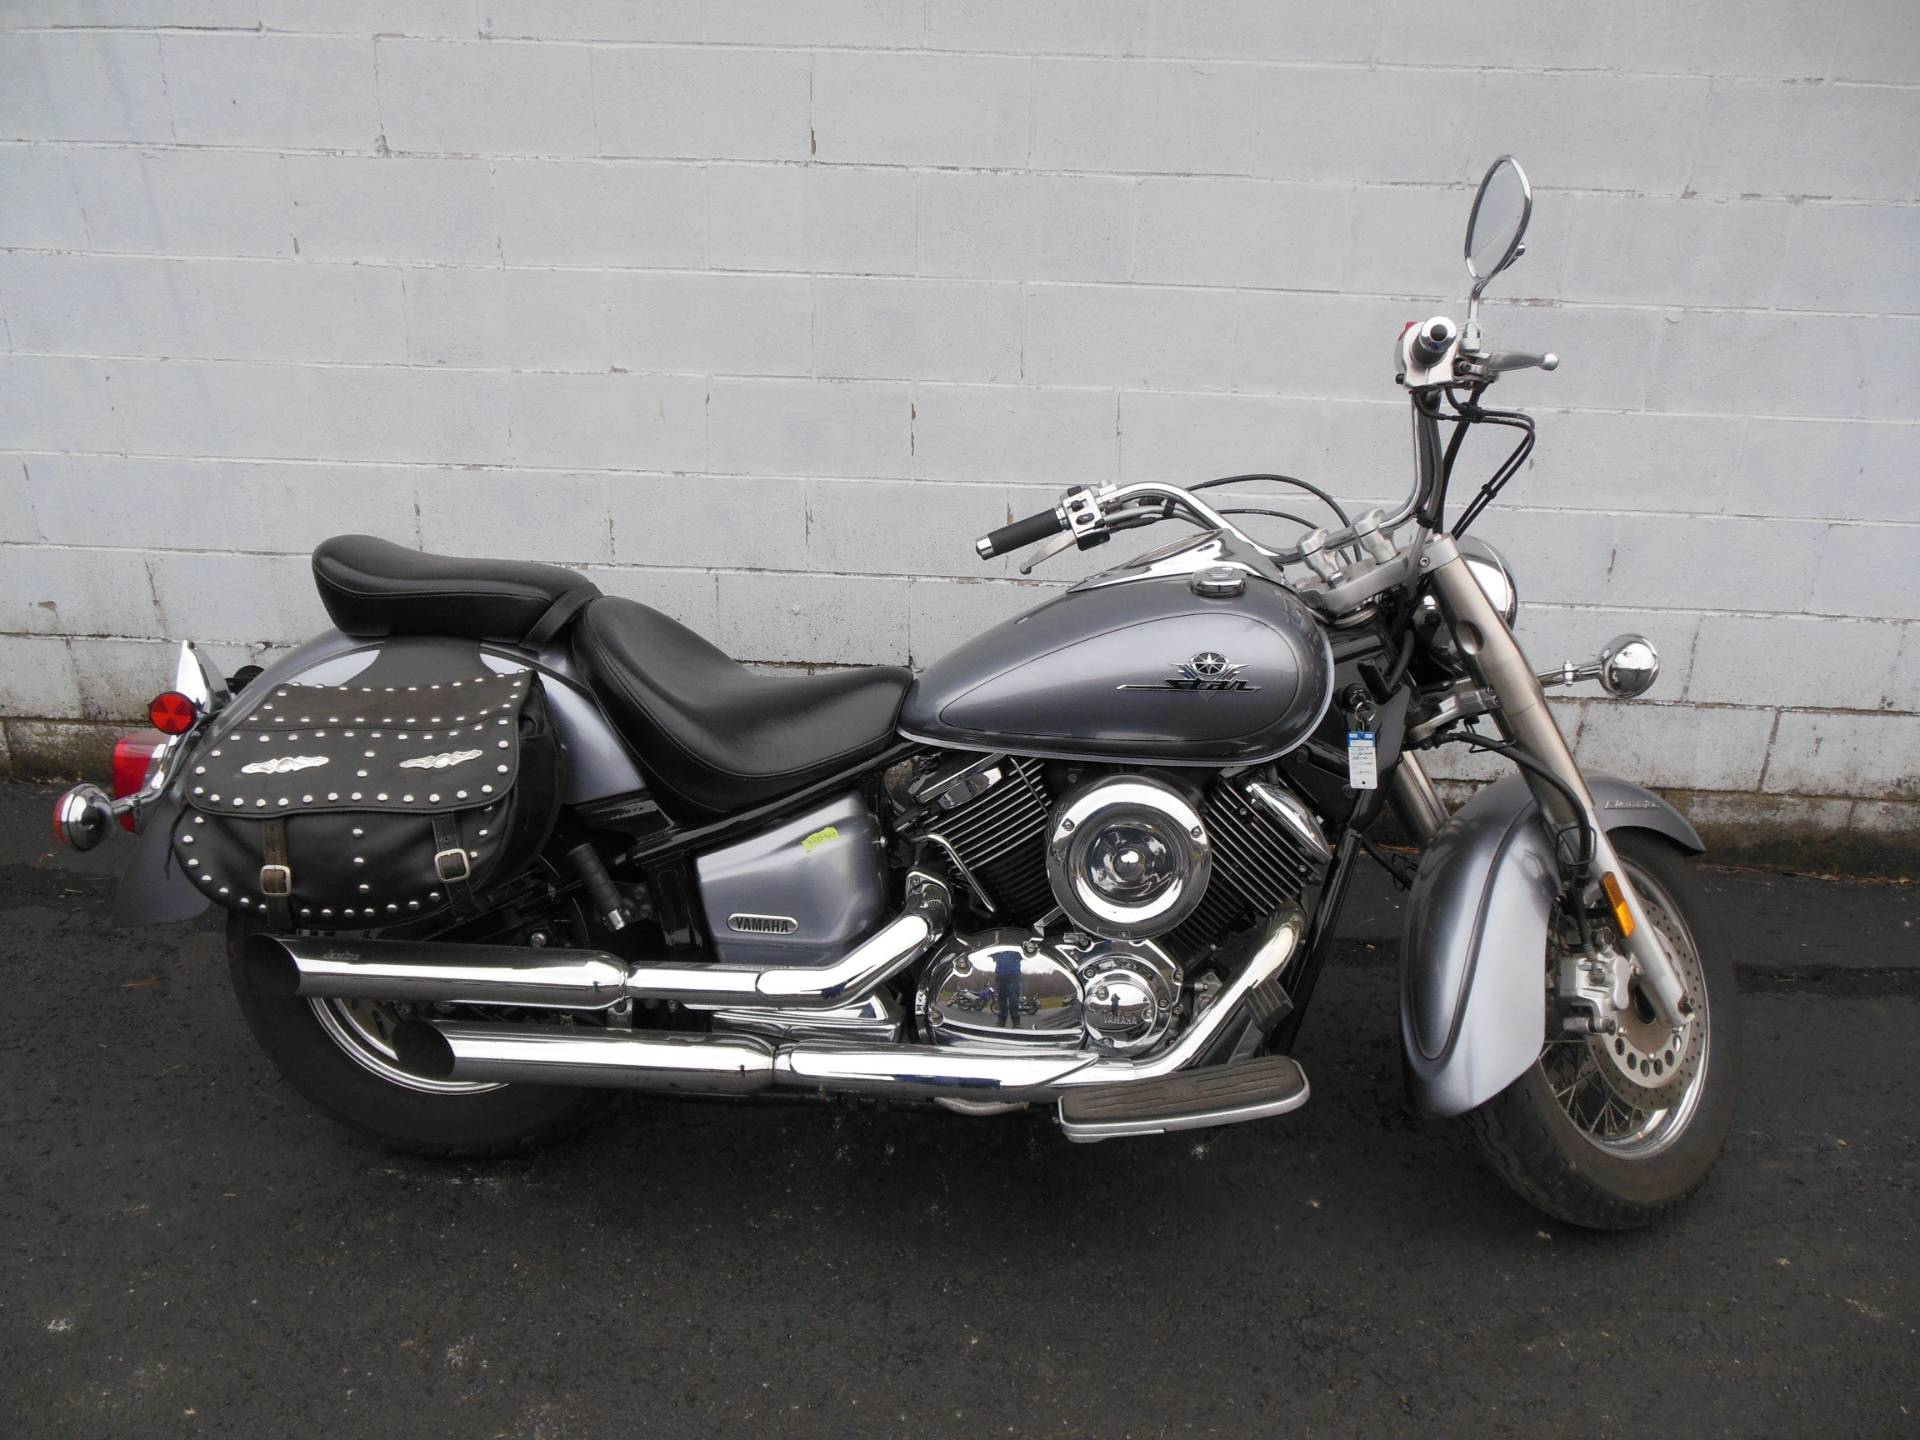 used 2003 yamaha v star 1100 classic motorcycles in